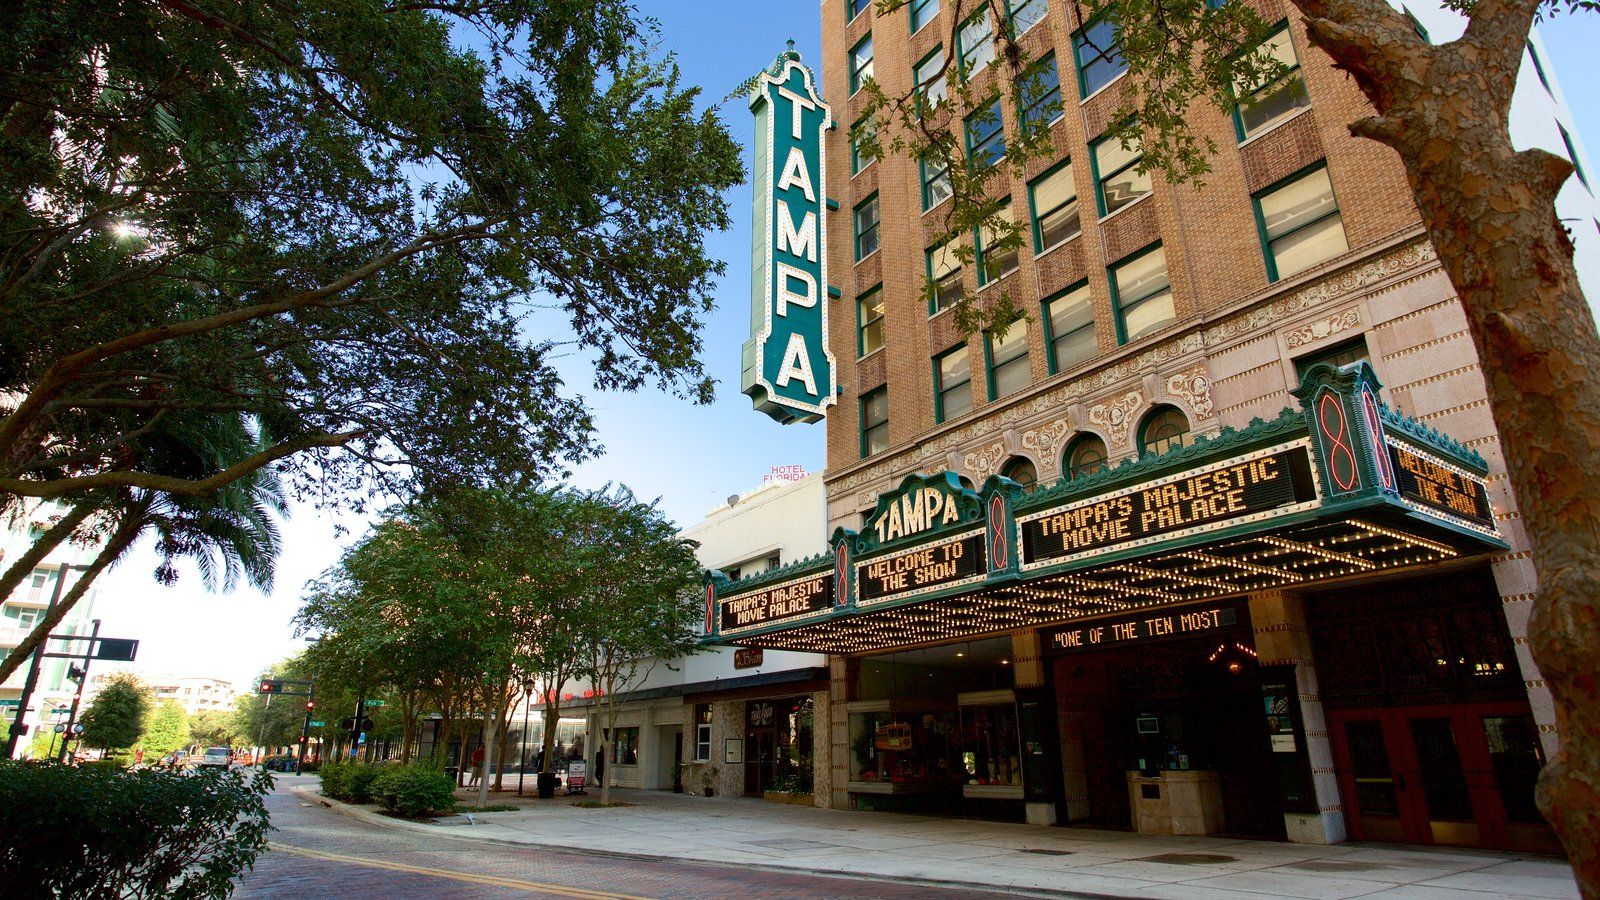 Tampa Theater which includes signage, theater scenes and heritage architecture